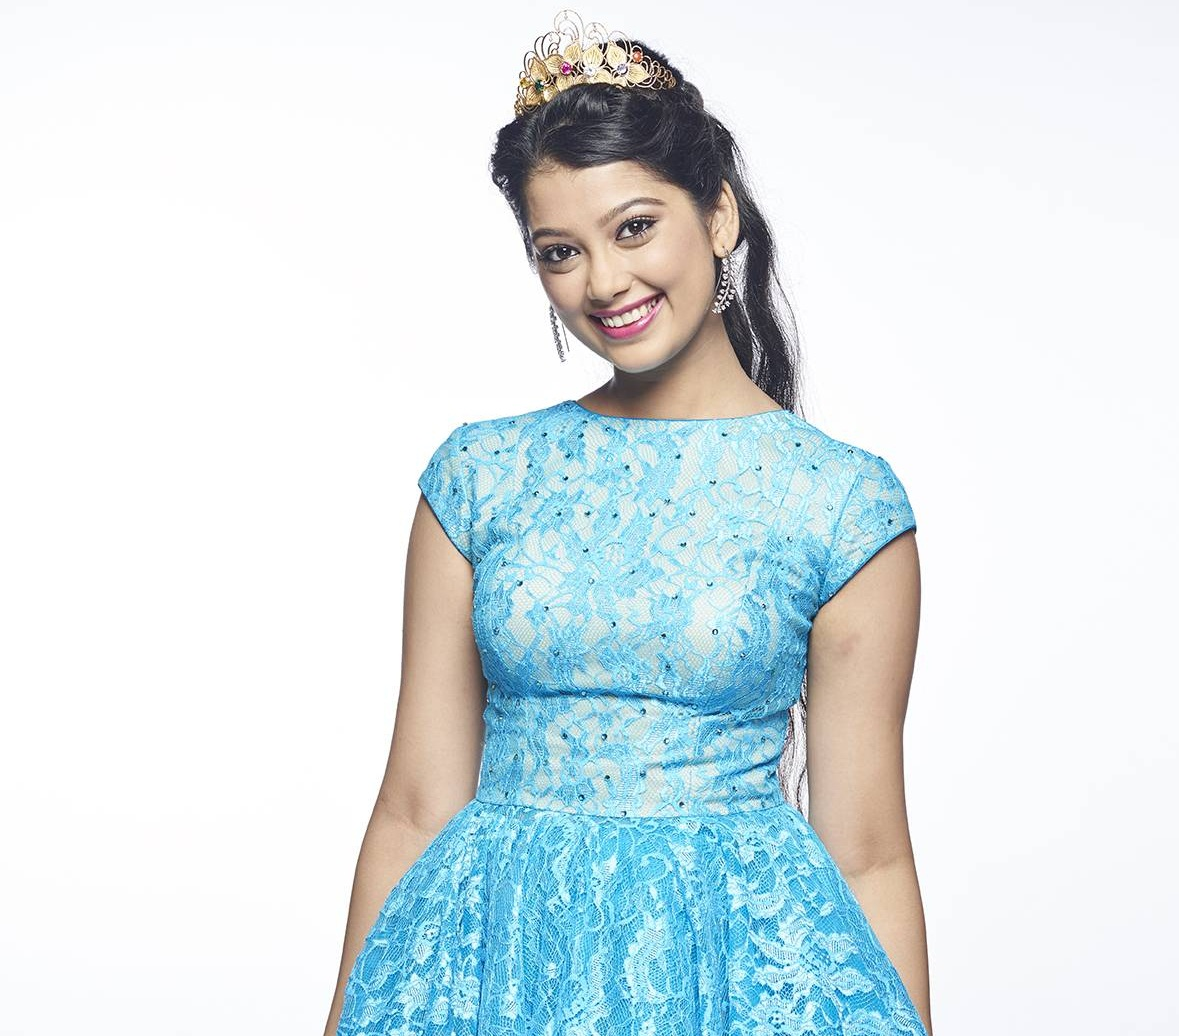 flying pc games download with Digangana Suryavanshi Hd Wallpapers on File Big egg moreover 43057 likewise Earn To Die 2 Free Download additionally F 16 Fighting Falcon 154301 further Cristiano Ronaldo Cr7 Flying Shot Football Hd Wallpaper.